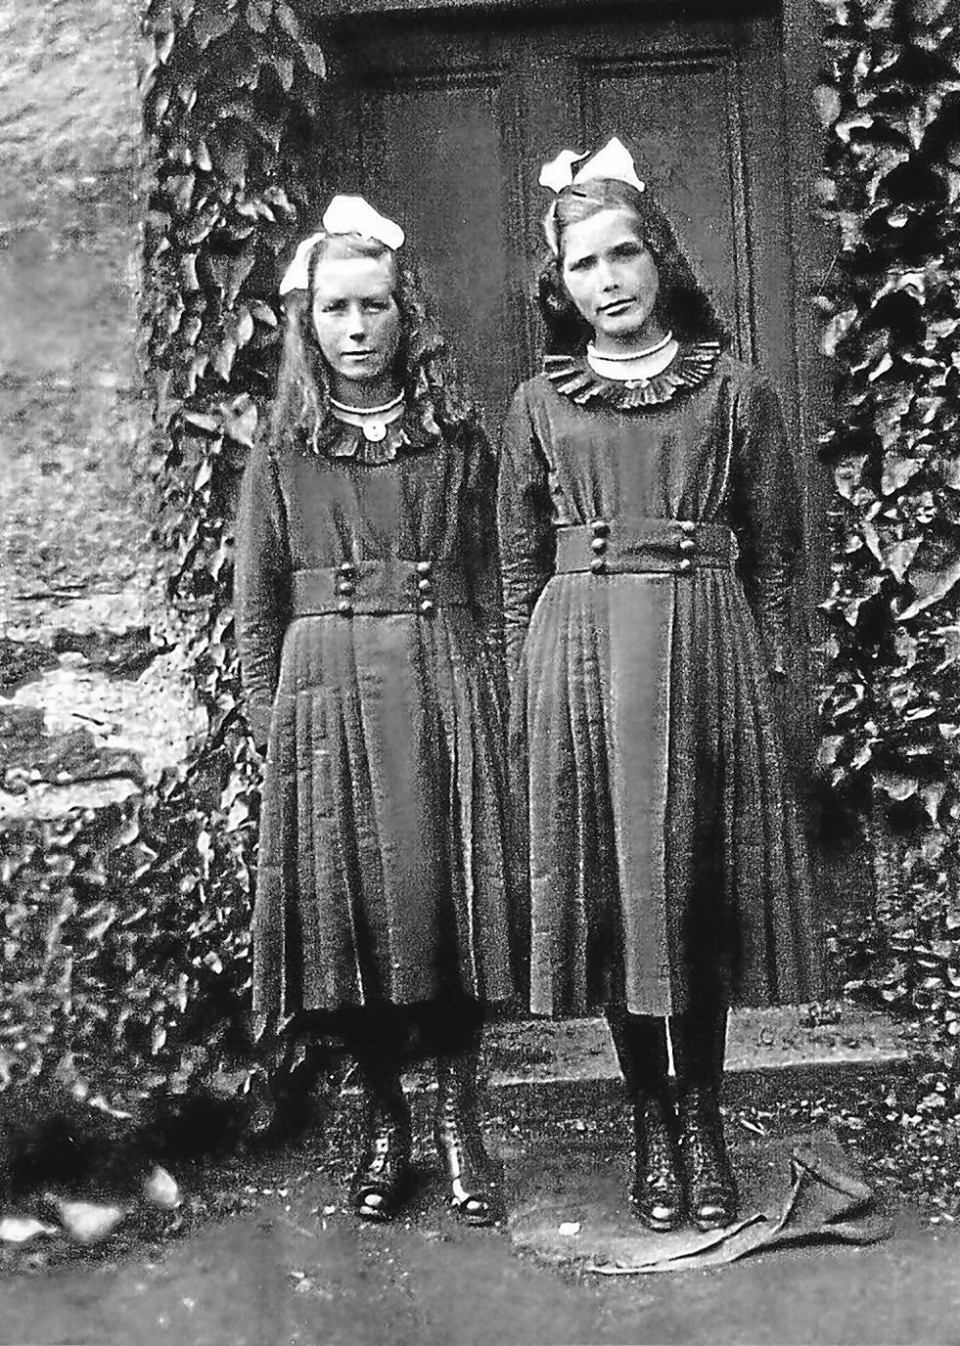 World's oldest twins Evelyn Middleton and Edith Ritchie